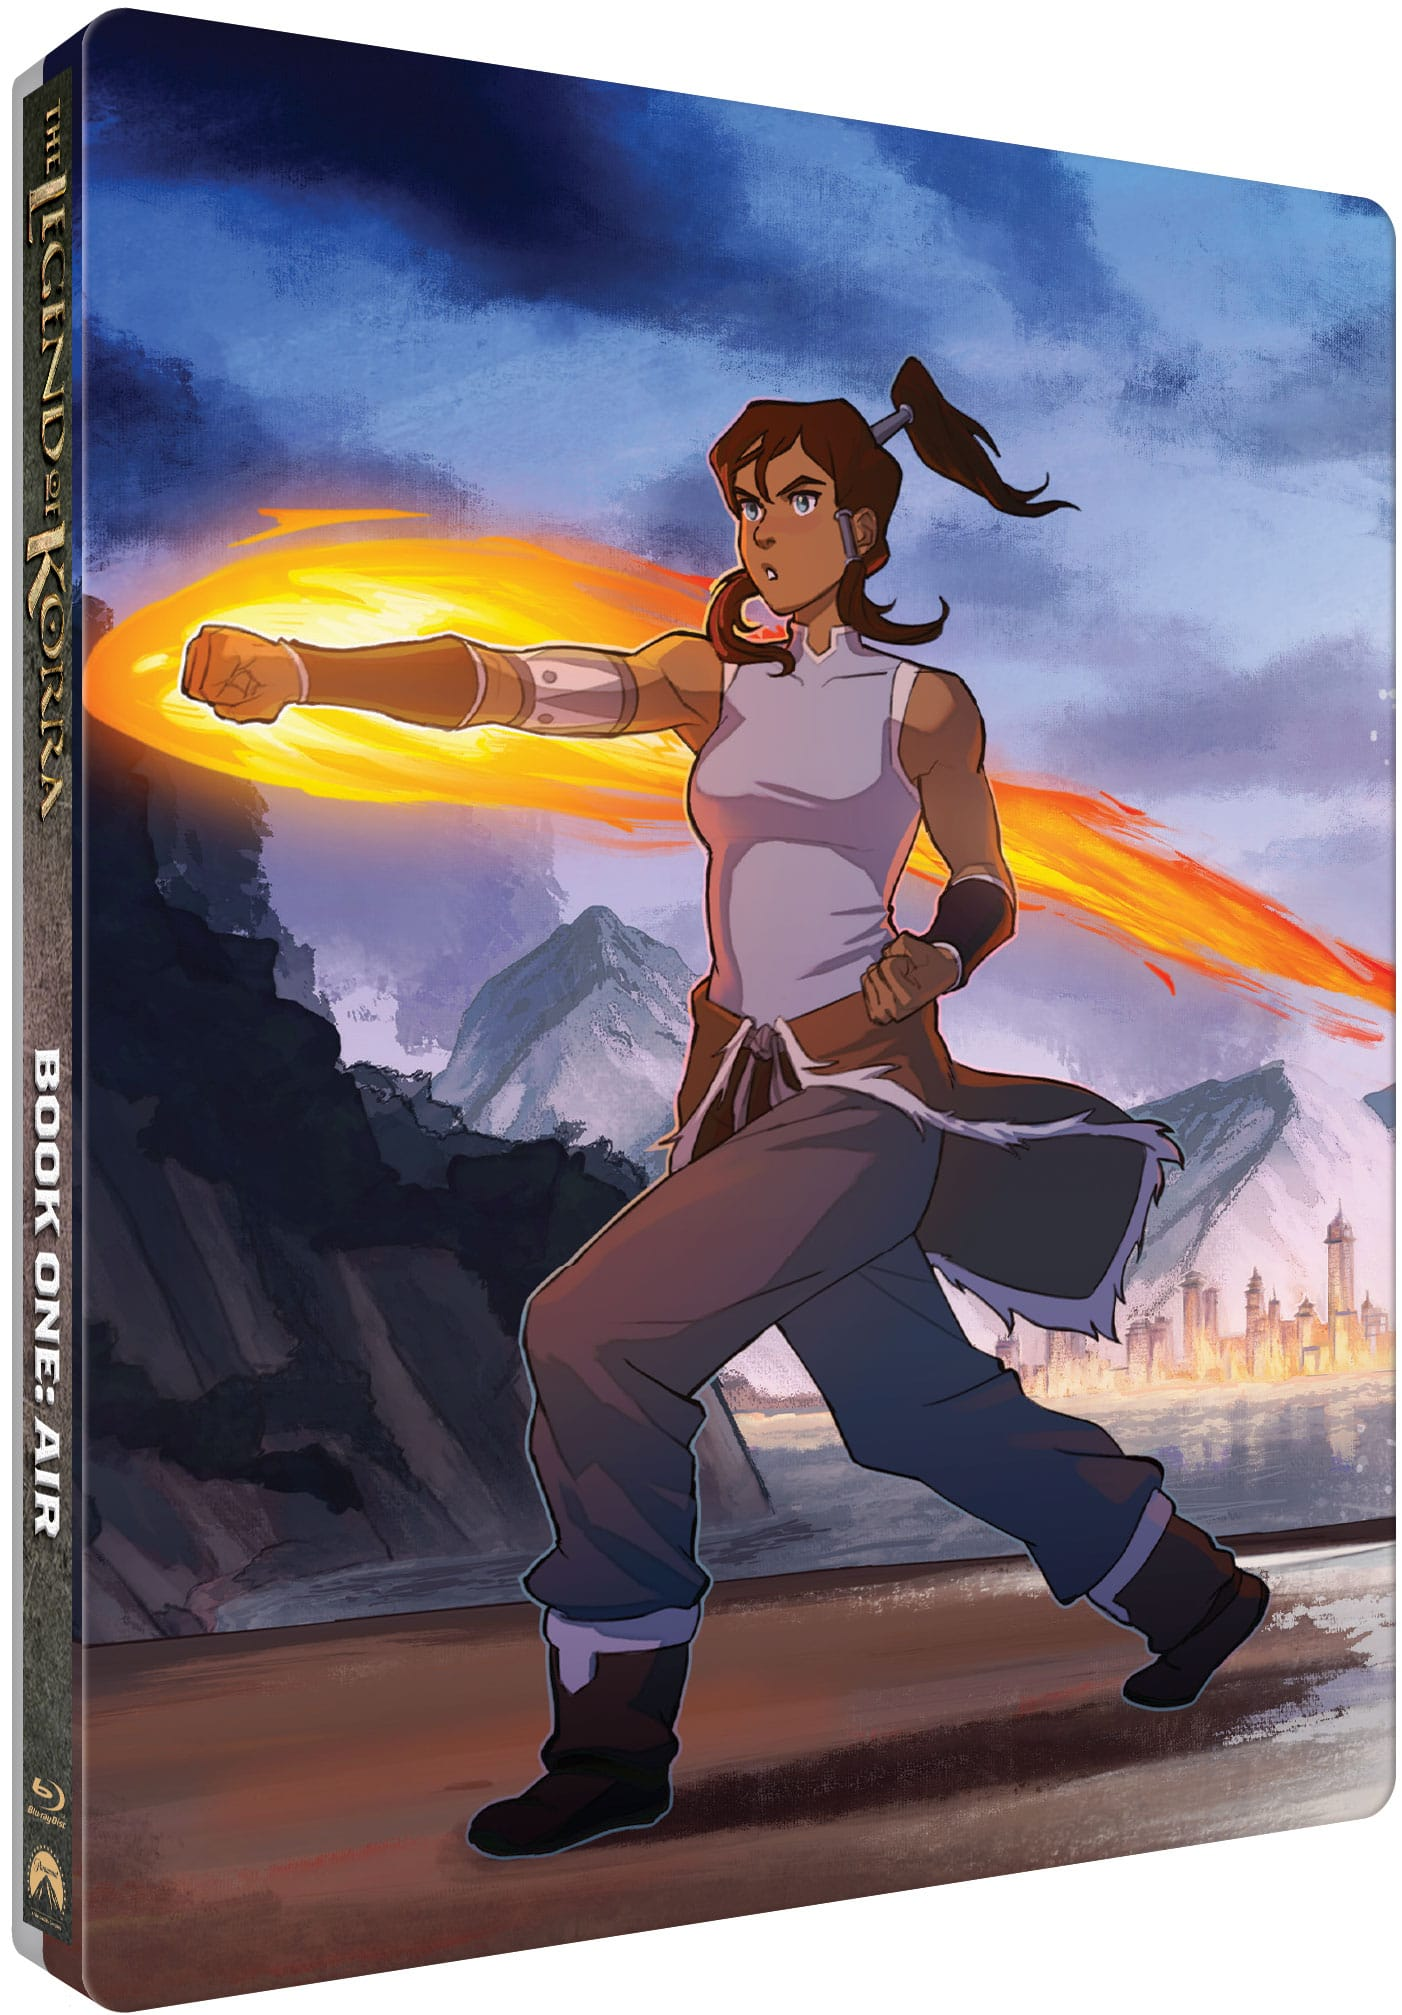 The Legend of Kora Limited Edition Steelbook Collection Book 1 Cover. Nickelodeon's critically acclaimed, Emmy® Award-winning The Legend of Korra animated series receives the SteelBook® treatment. The Legend of Korra - The Complete Series Limited Edition Steelbook Collection, a 4-book collection features stunning new artwork by artist Caleb Thomas. Each book featuring a different element (Fire, Water, Earth, and Air).